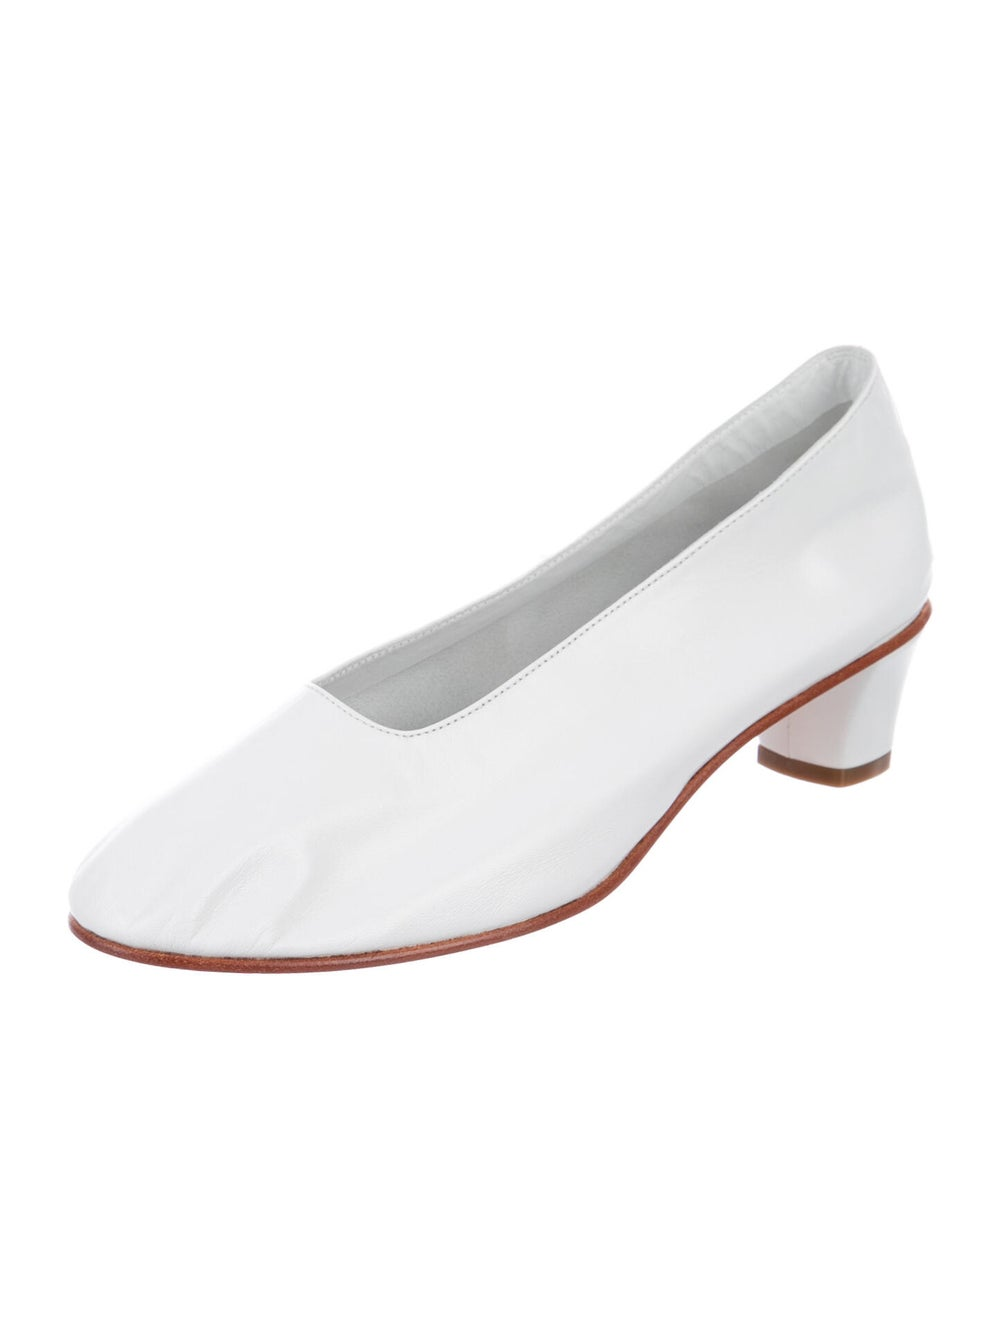 Martiniano Leather Pumps White - image 2